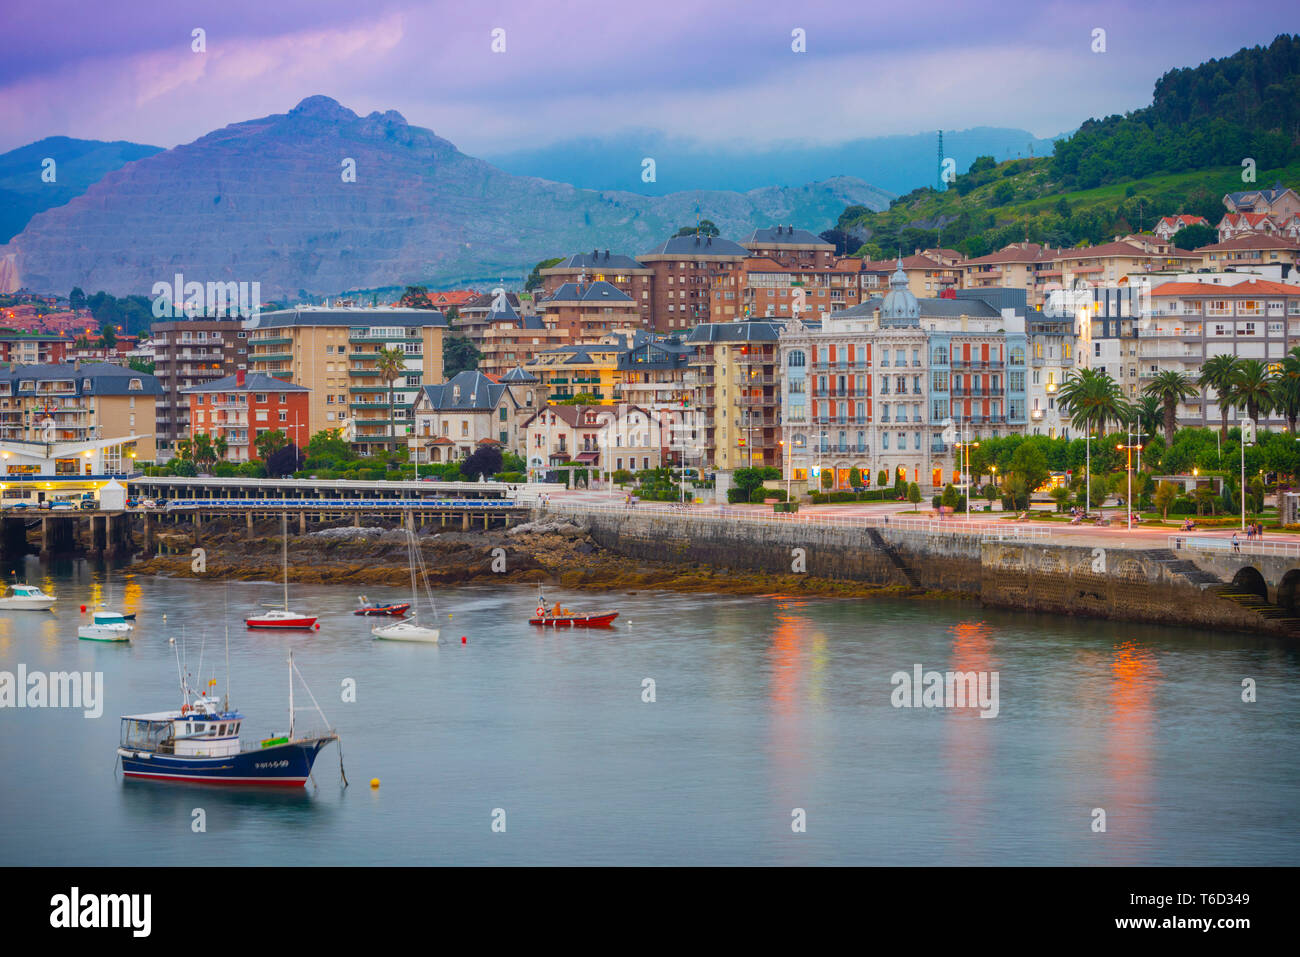 Spain, Cantabria, Castro-Urdiales, view of town and harbour Stock Photo